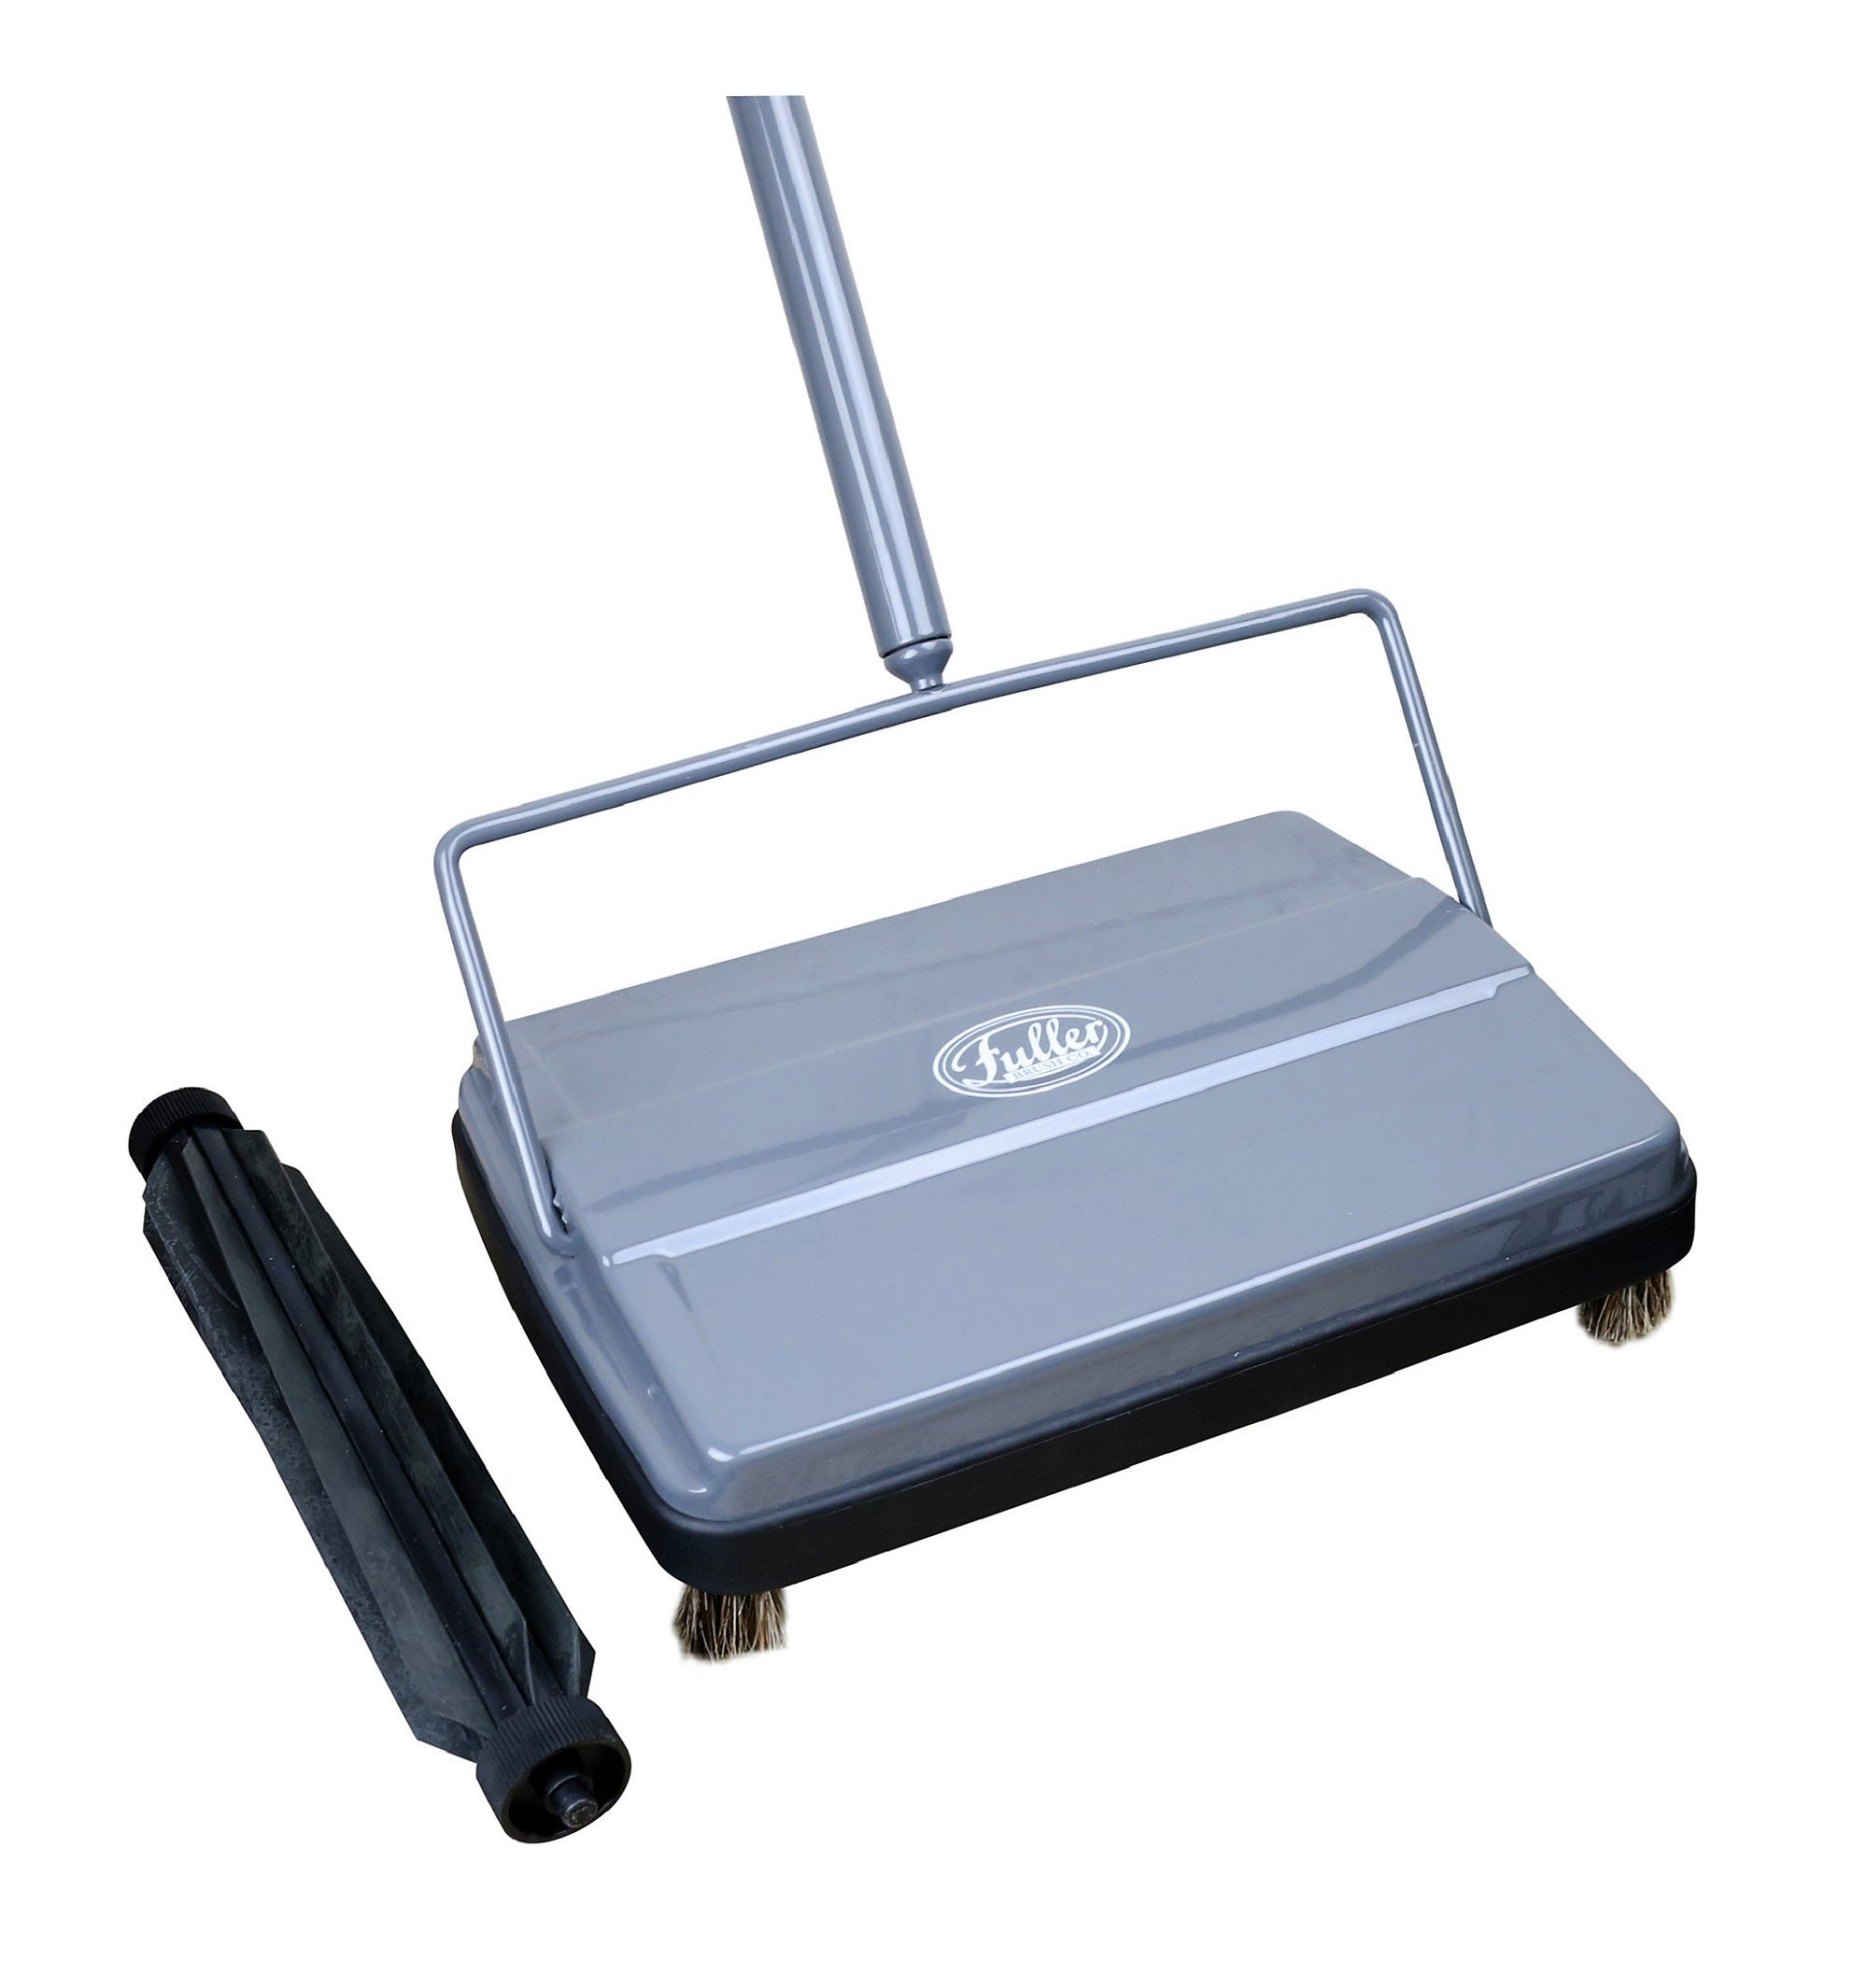 Fuller Brush Electrostatic Carpet & Floor Sweeper with Additional Rubber Rotor - 9'' Cleaning Path - Gray